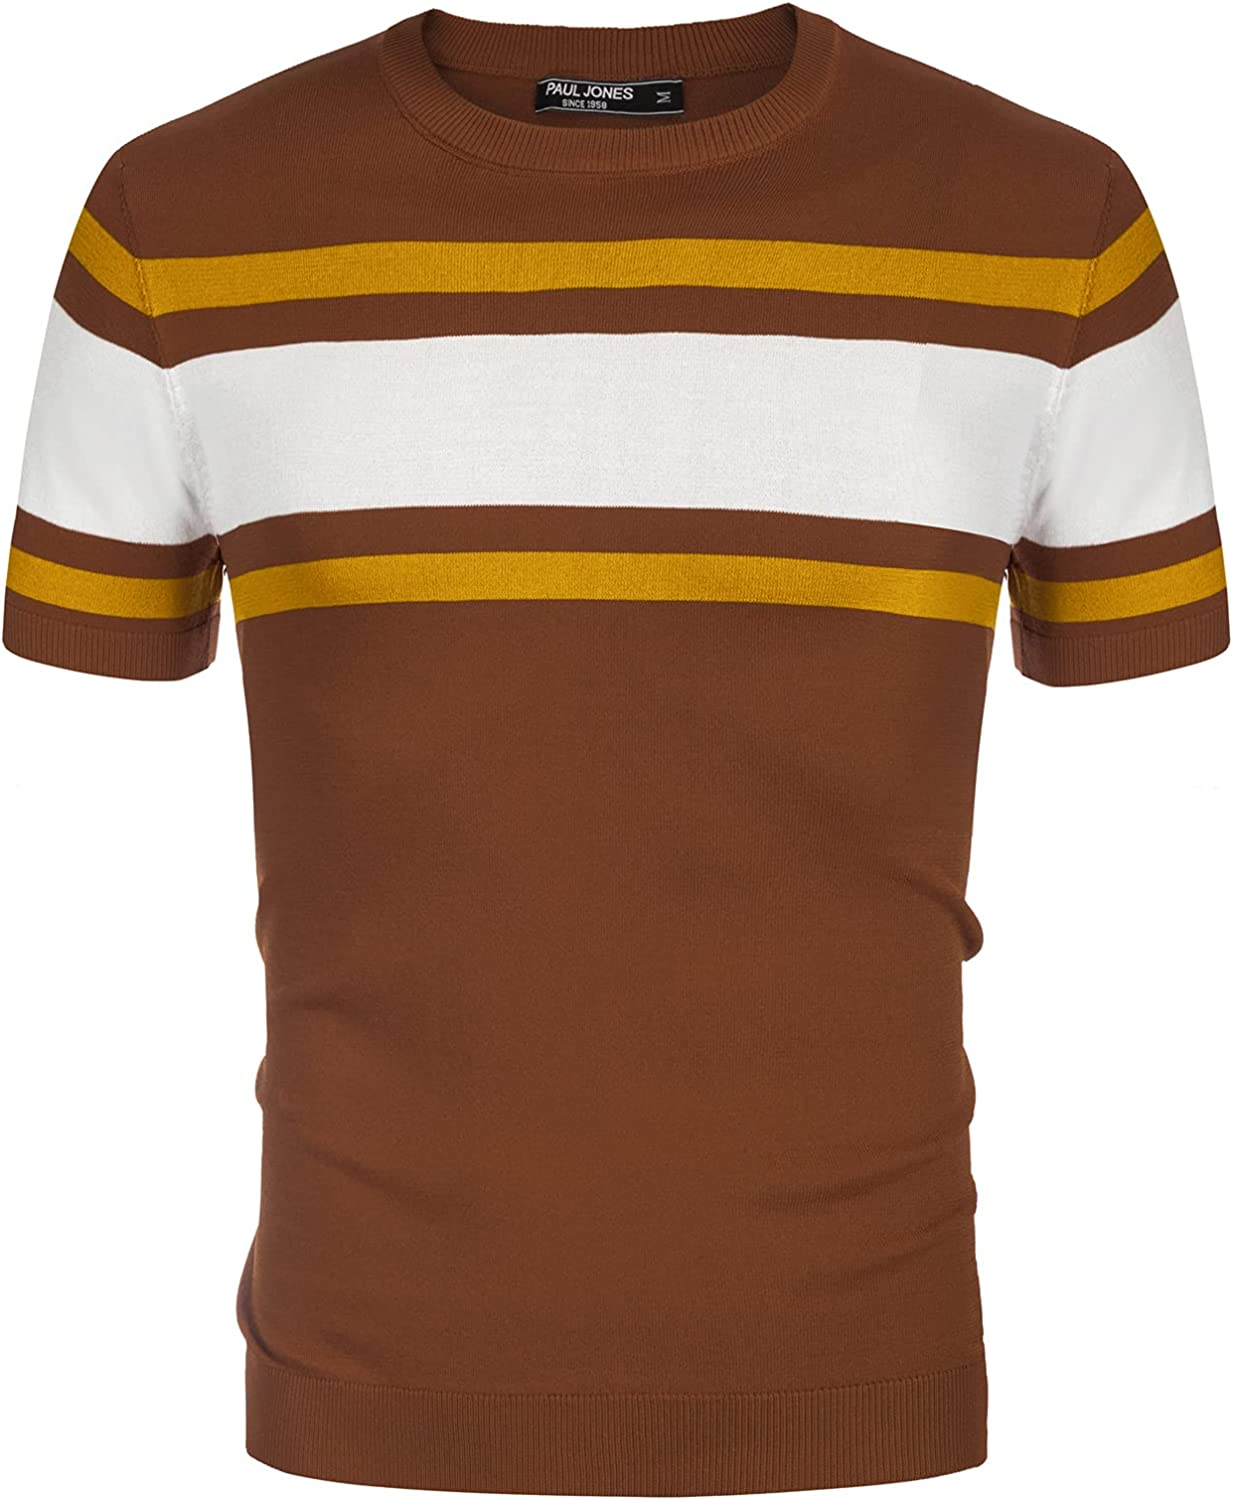 Mens Vintage Shirts – Casual, Dress, T-shirts, Polos PJ PAUL JONES Mens Casual Crew Neck Pullover Short Sleeve Knitted Summer Pullover Sweaters  AT vintagedancer.com